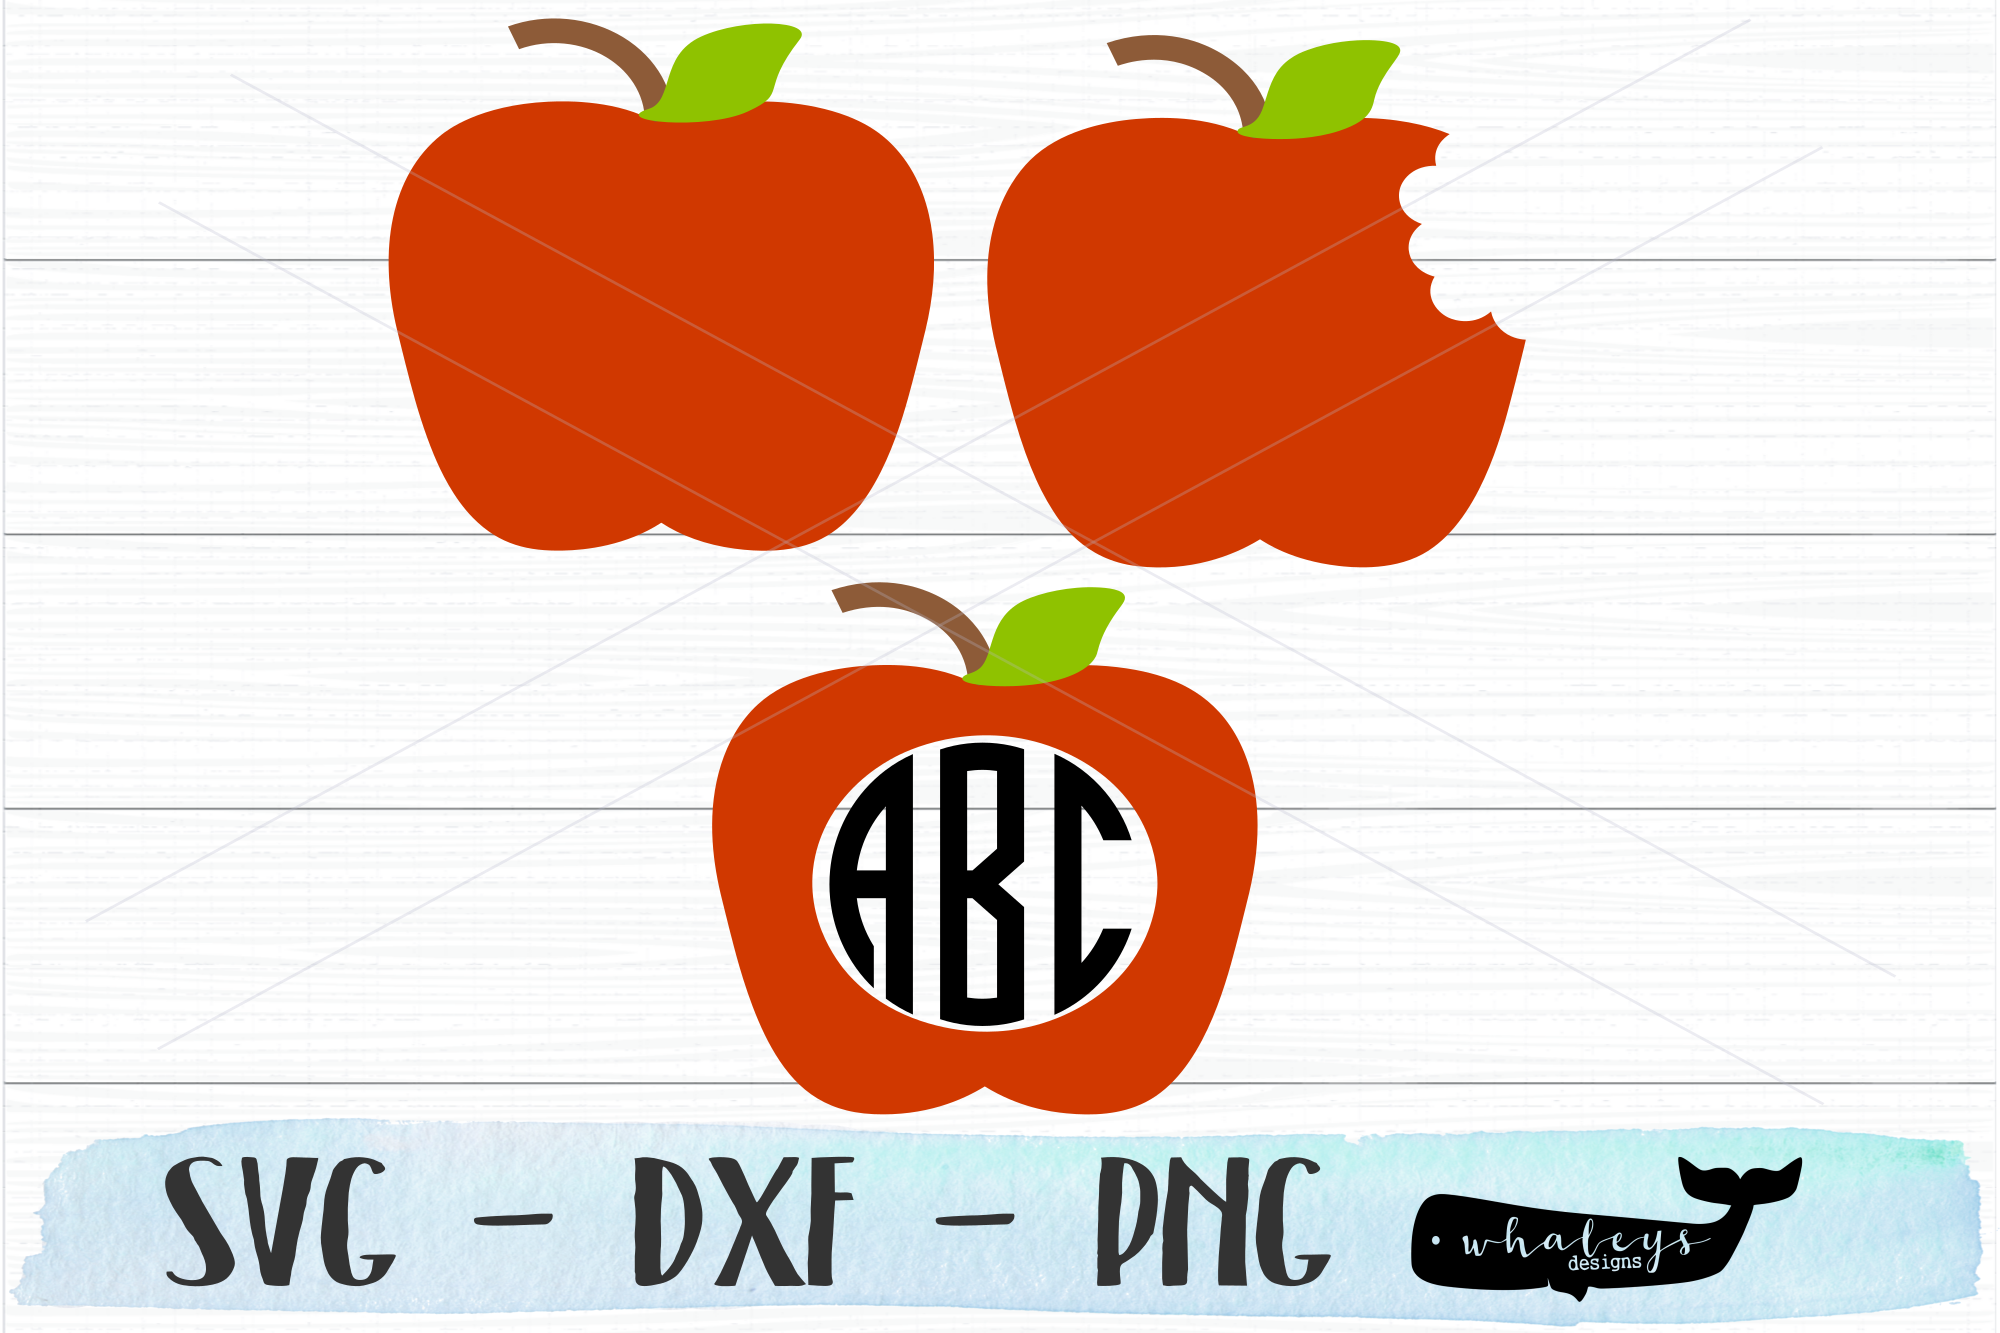 Download Free Apple Teacher Graphic By Whaleysdesigns Creative Fabrica for Cricut Explore, Silhouette and other cutting machines.